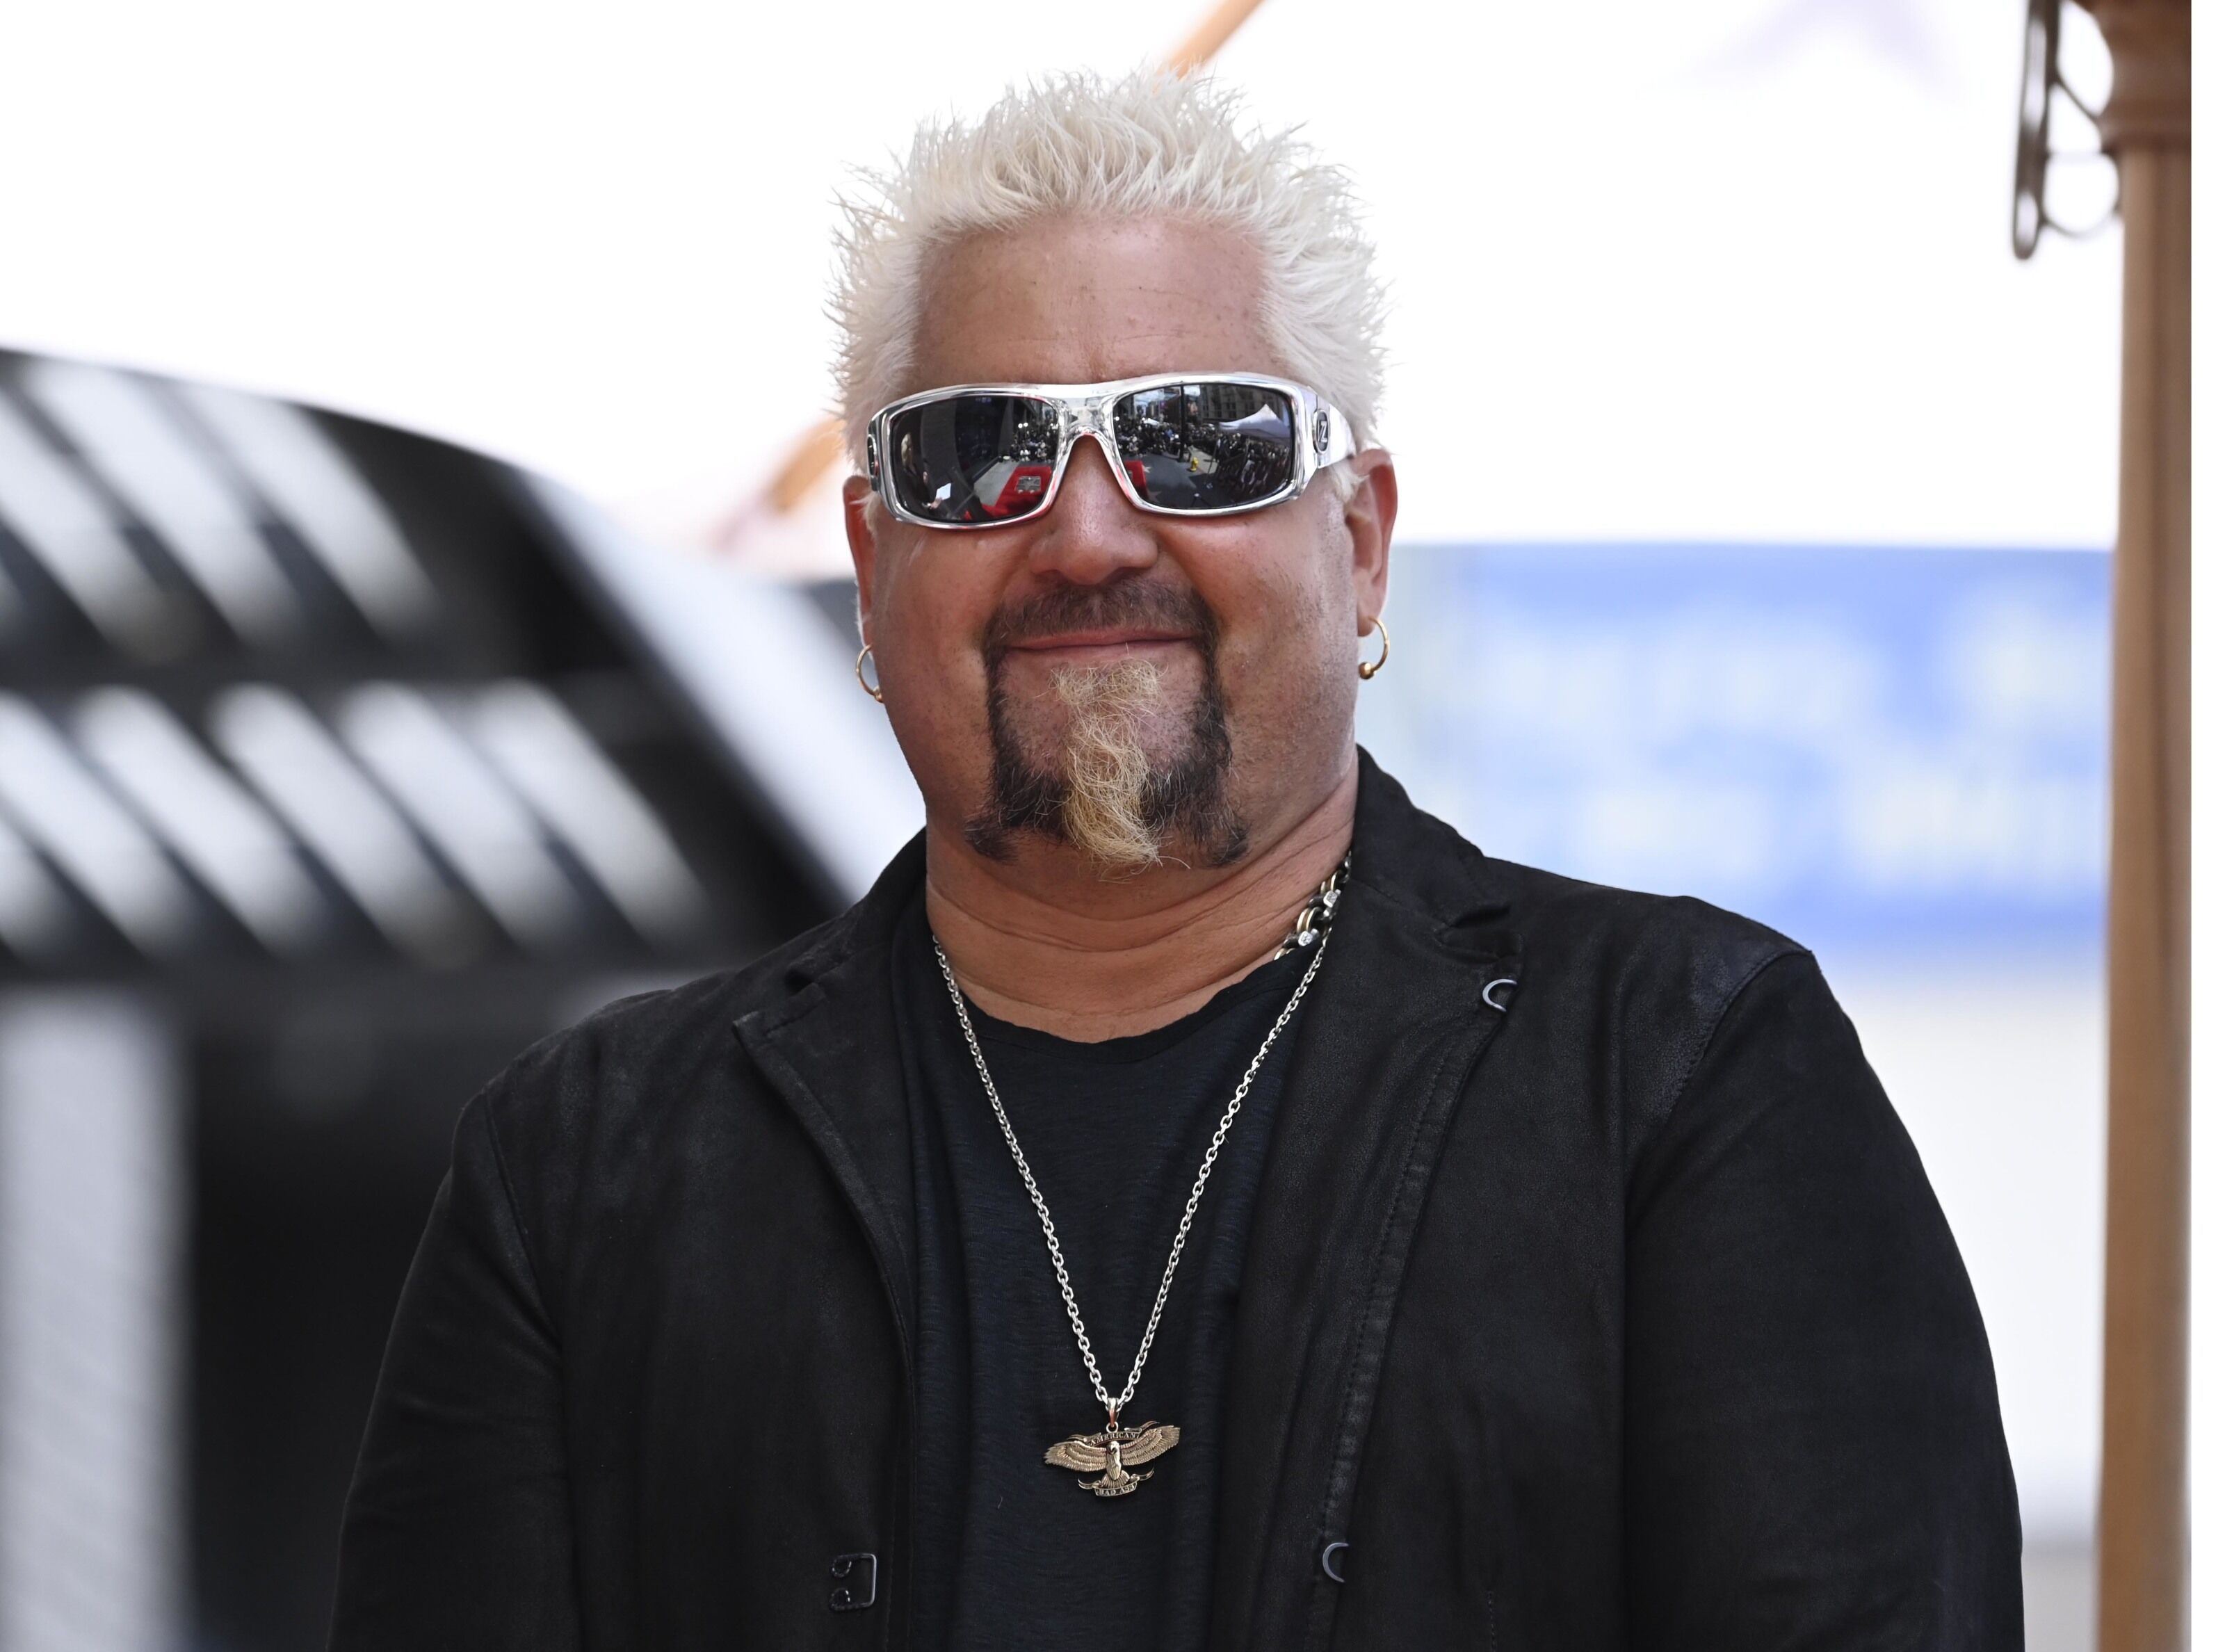 Guy Fieri: He now has his own Funko Pop Doll, but did we need it?